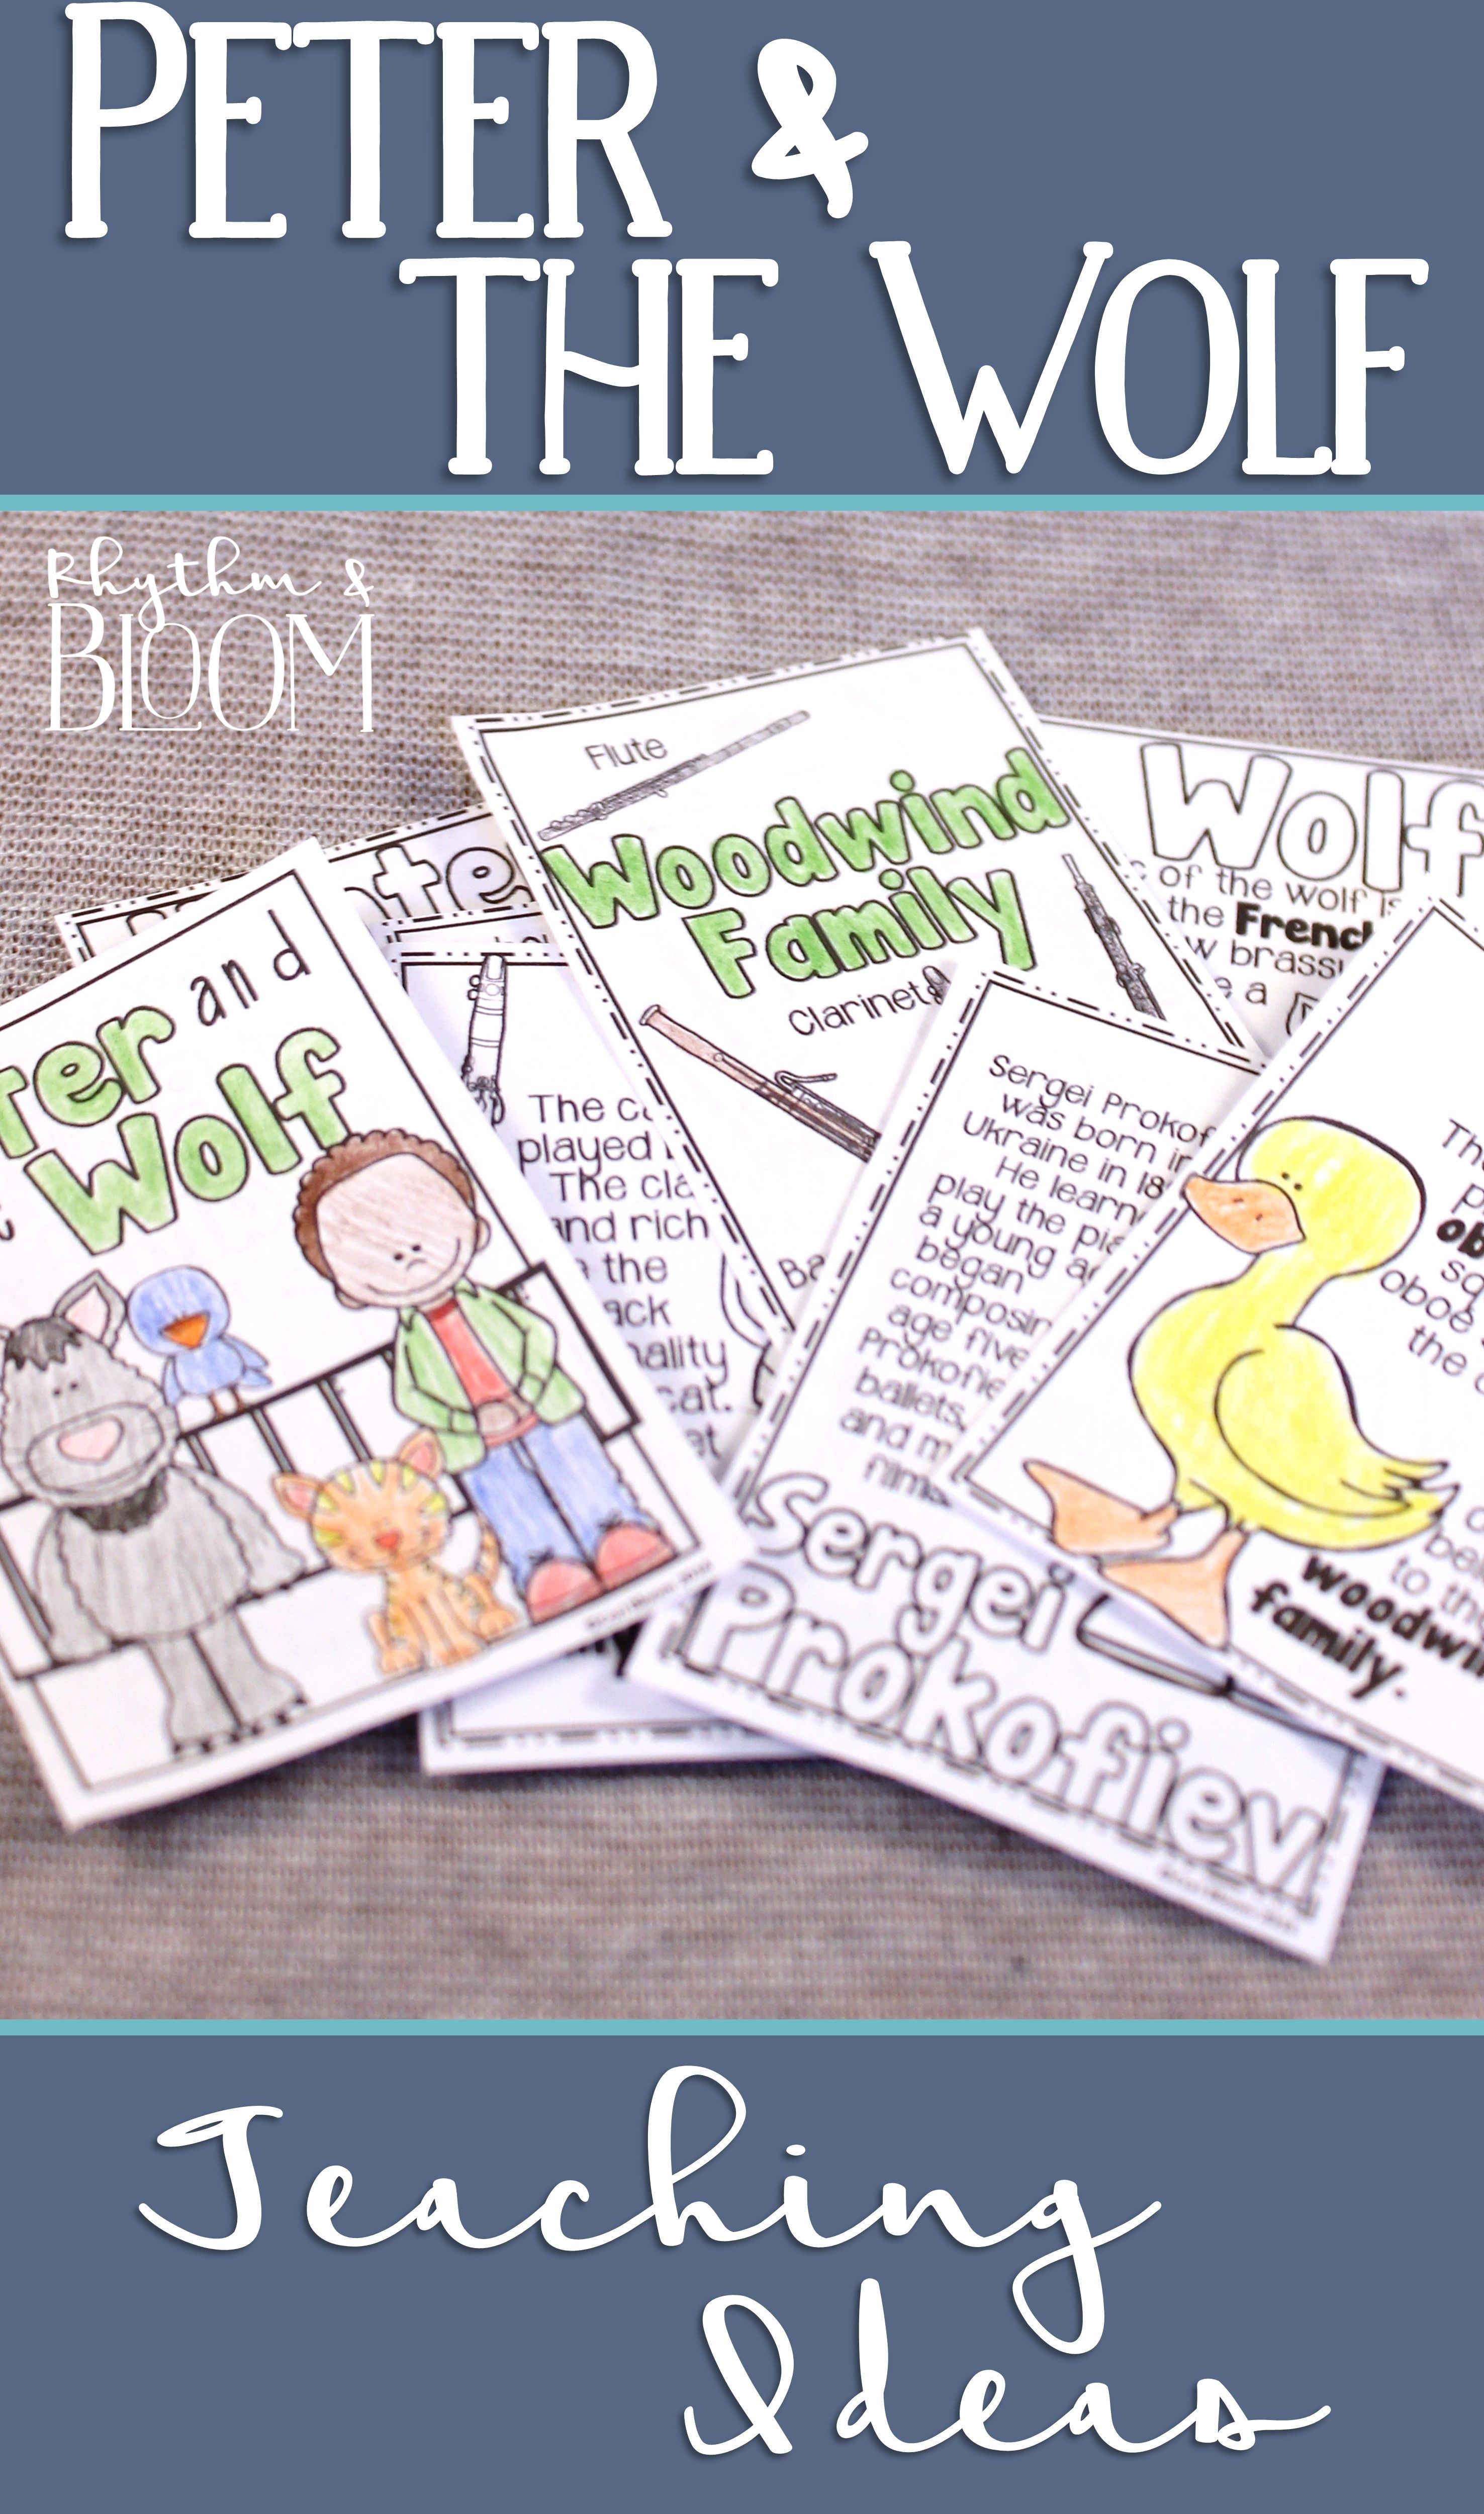 A Collection Of Ideas For Teaching Peter And The Wolf